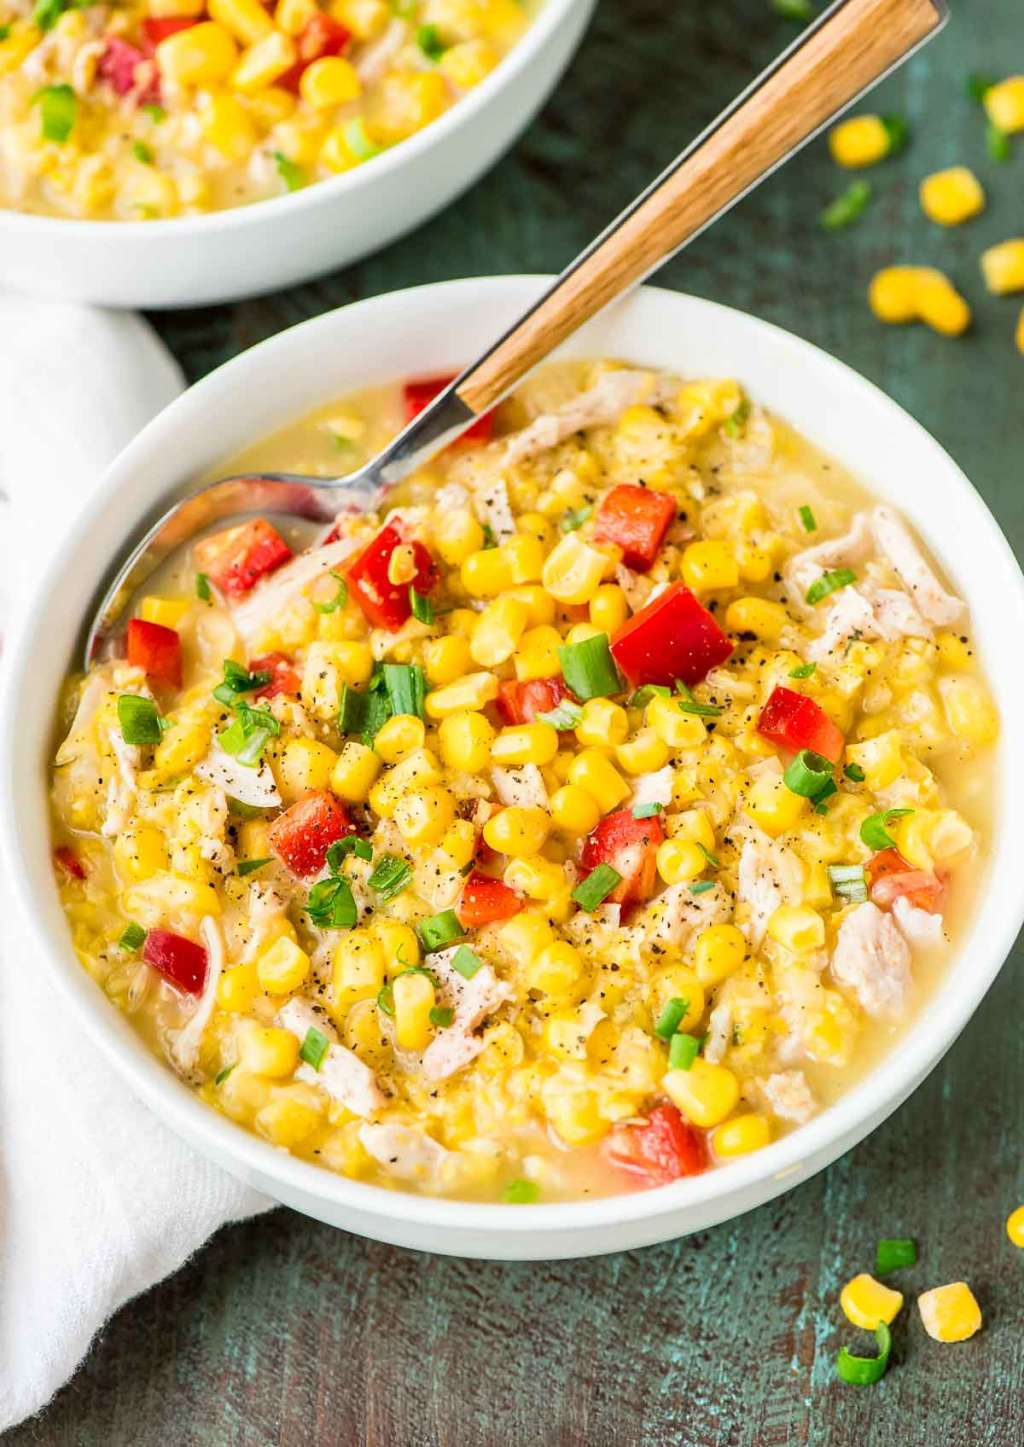 This Slow-Cooker Chicken & Corn Chowder Is the Easy Summer Dinner You've Been Looking For